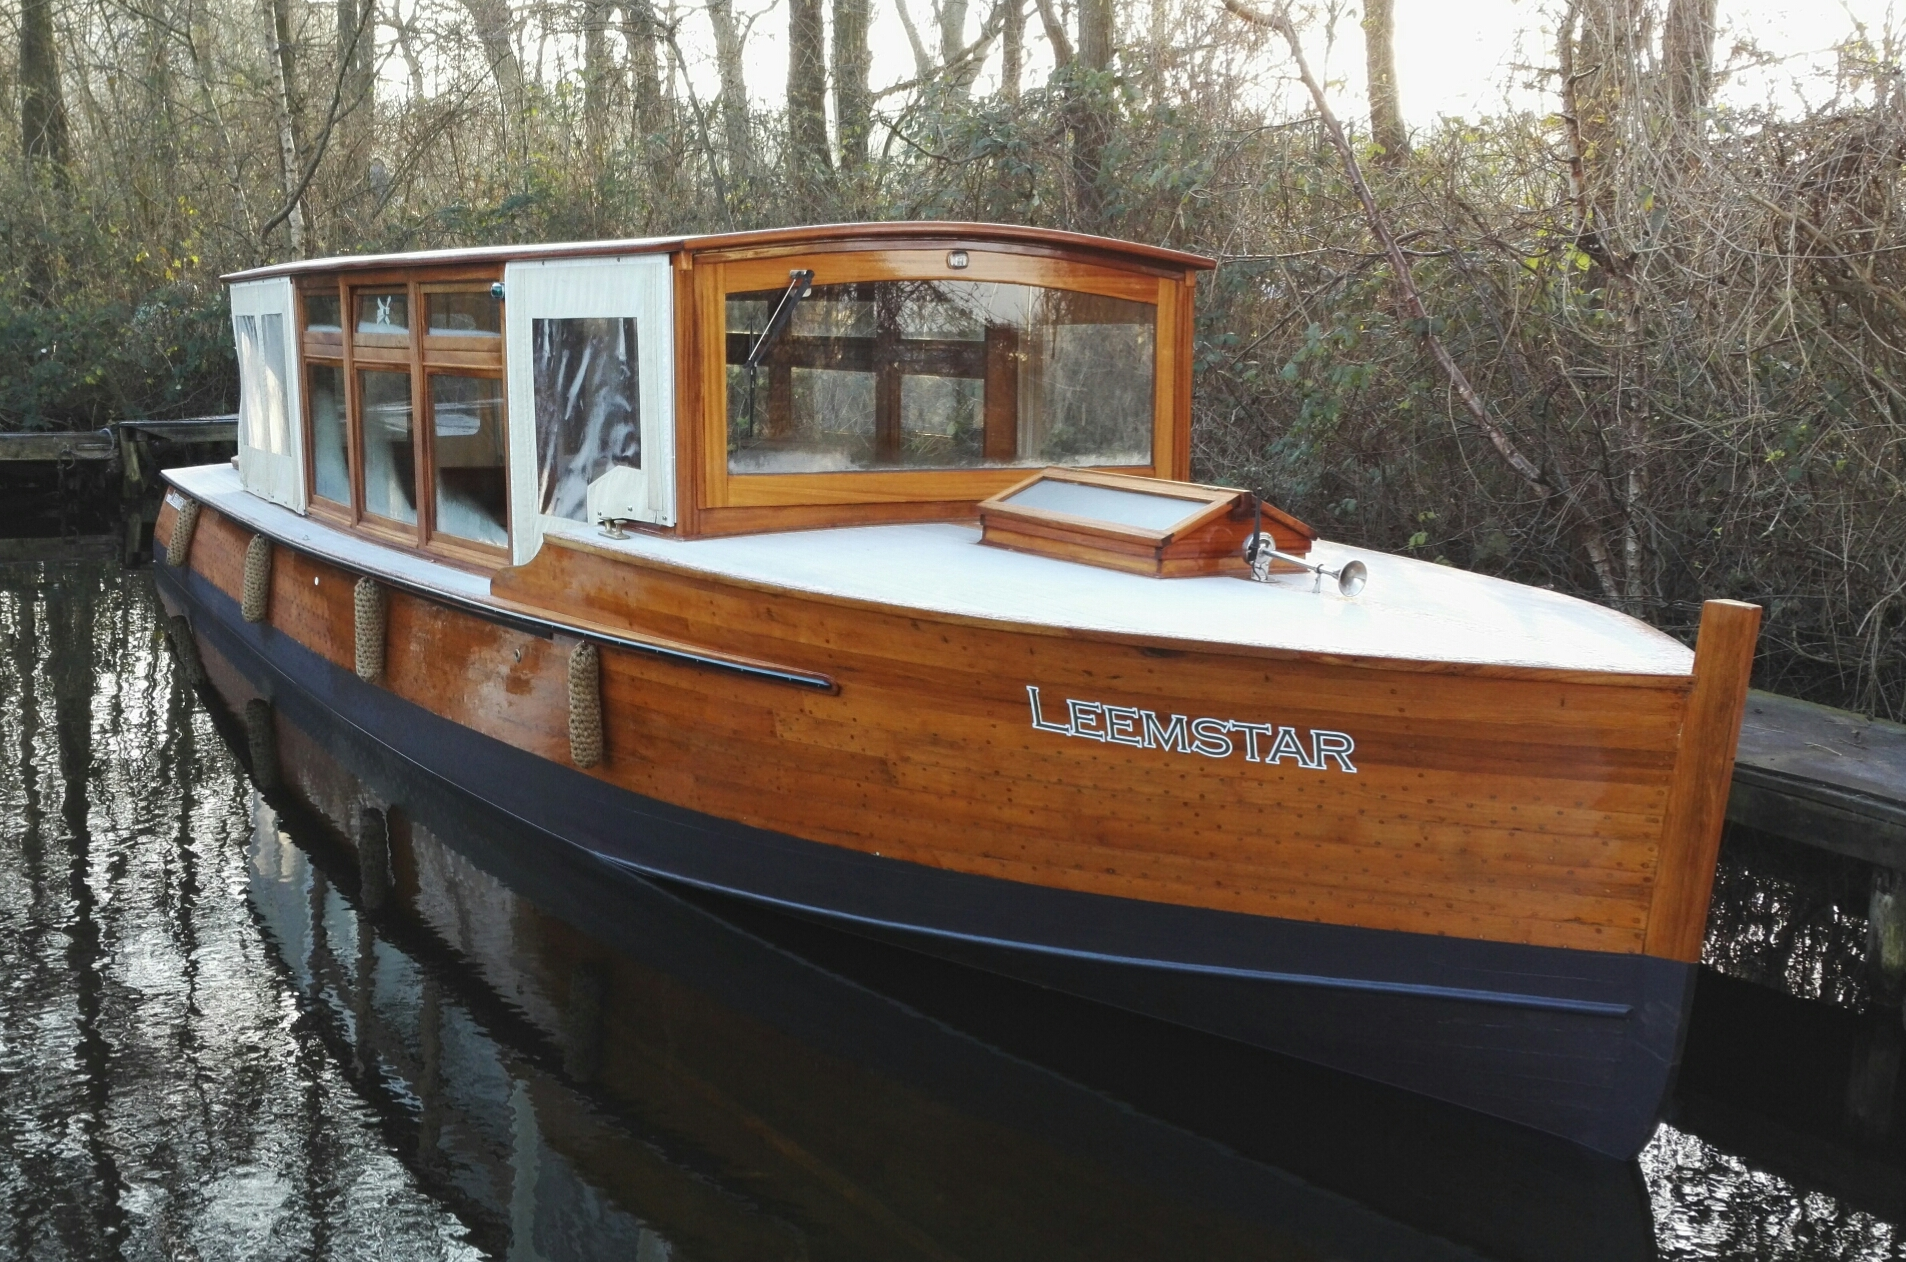 Leemstar Amsterdam Guided Canal Cruises provides in quality canal tours with personal service and local knowledge.  - foto 1